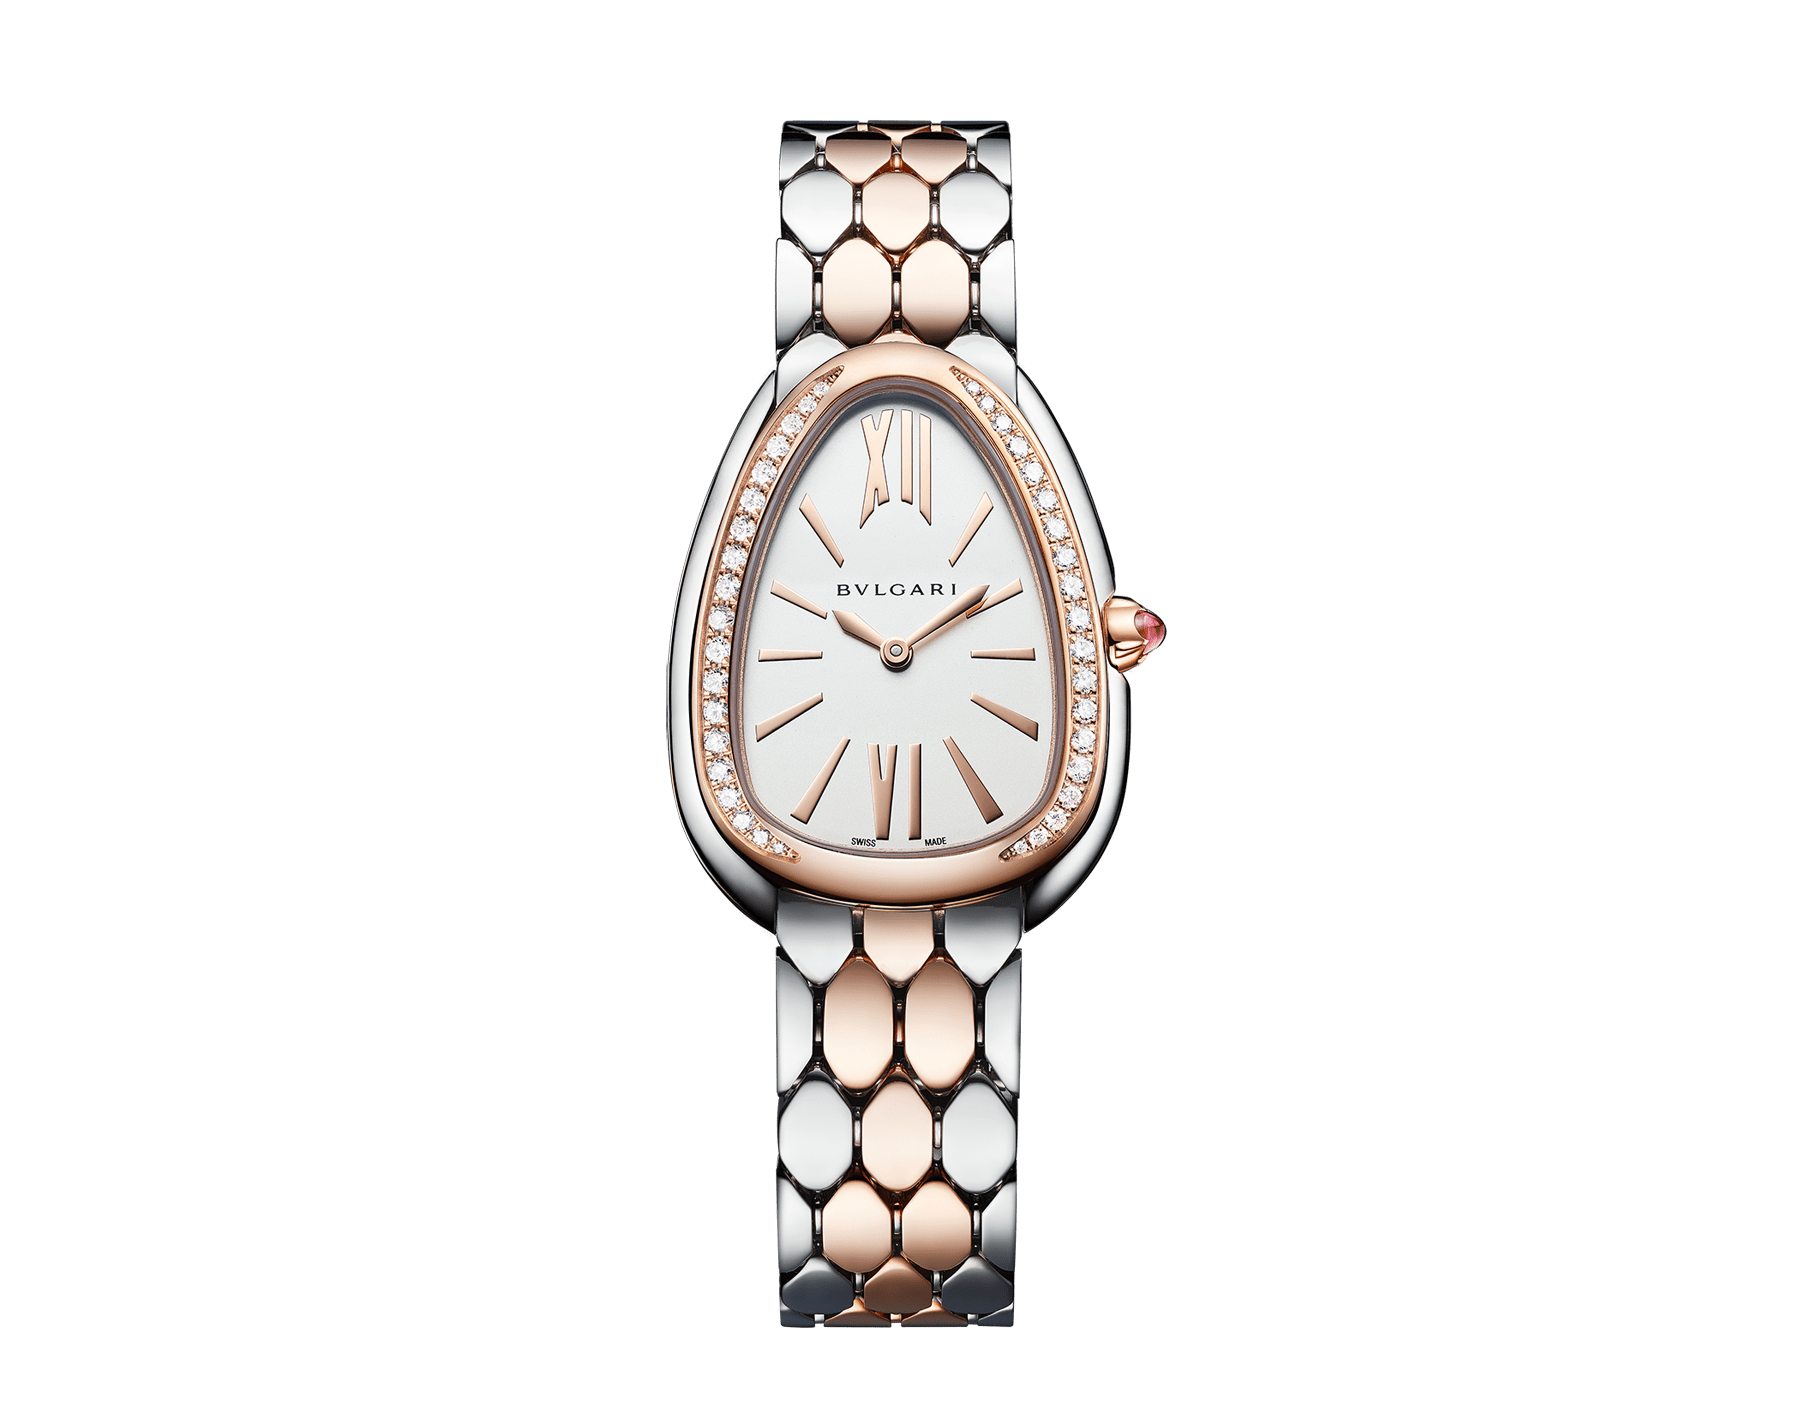 Serpenti Seduttori watch with stainless steel case, 18 kt rose gold bezel set with diamonds, white dial, and 18 kt rose gold and stainless steel bracelet 103274 image 1